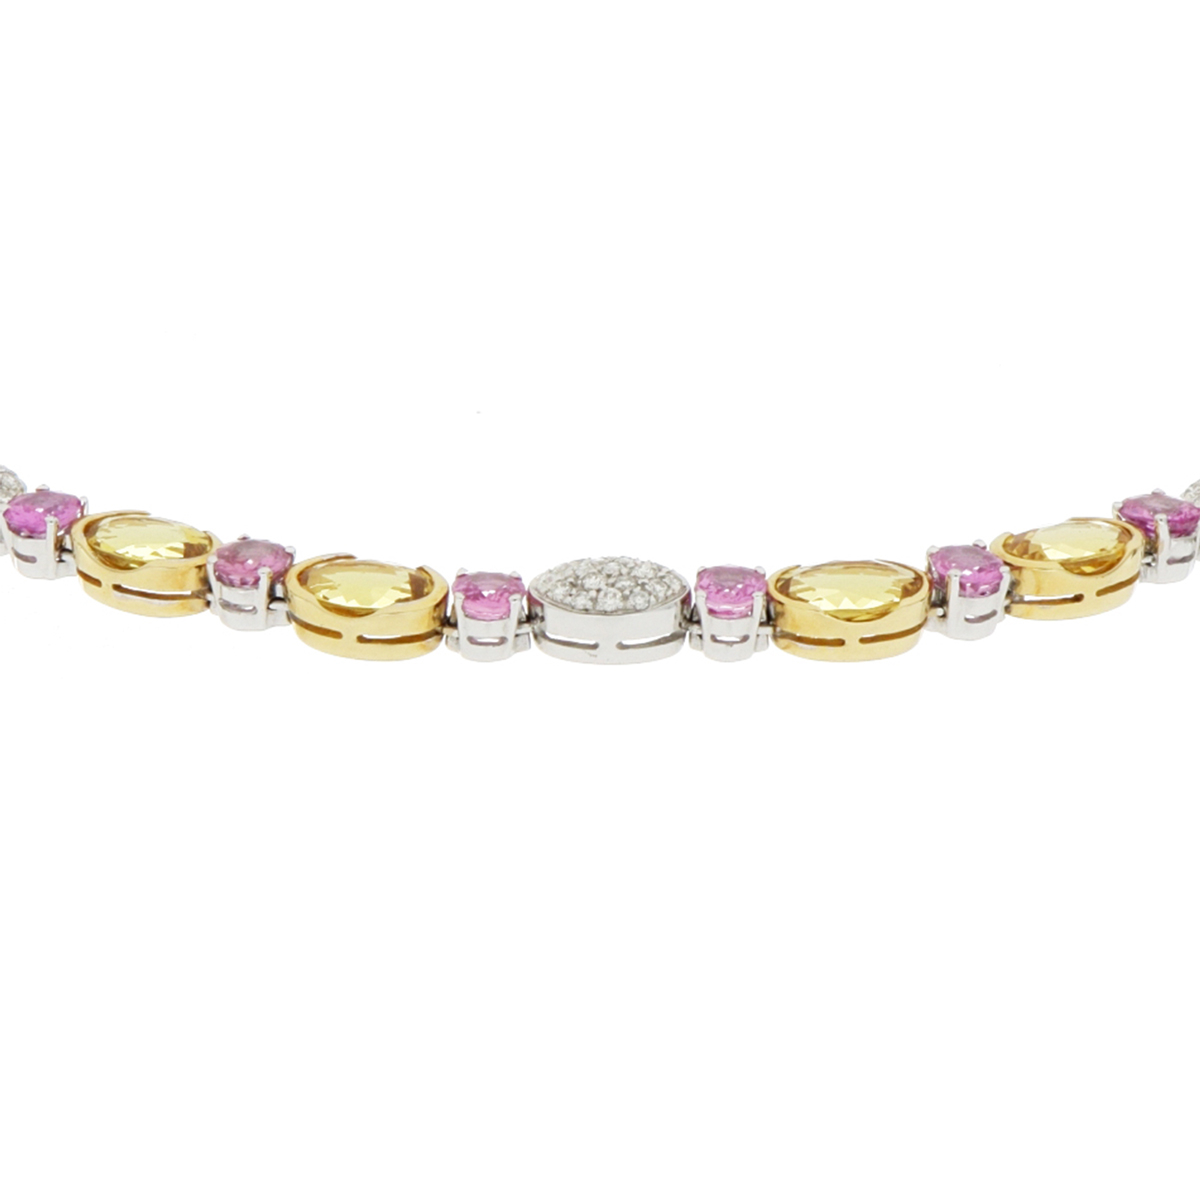 Pink Sapphire and Yellow Beryl Necklace